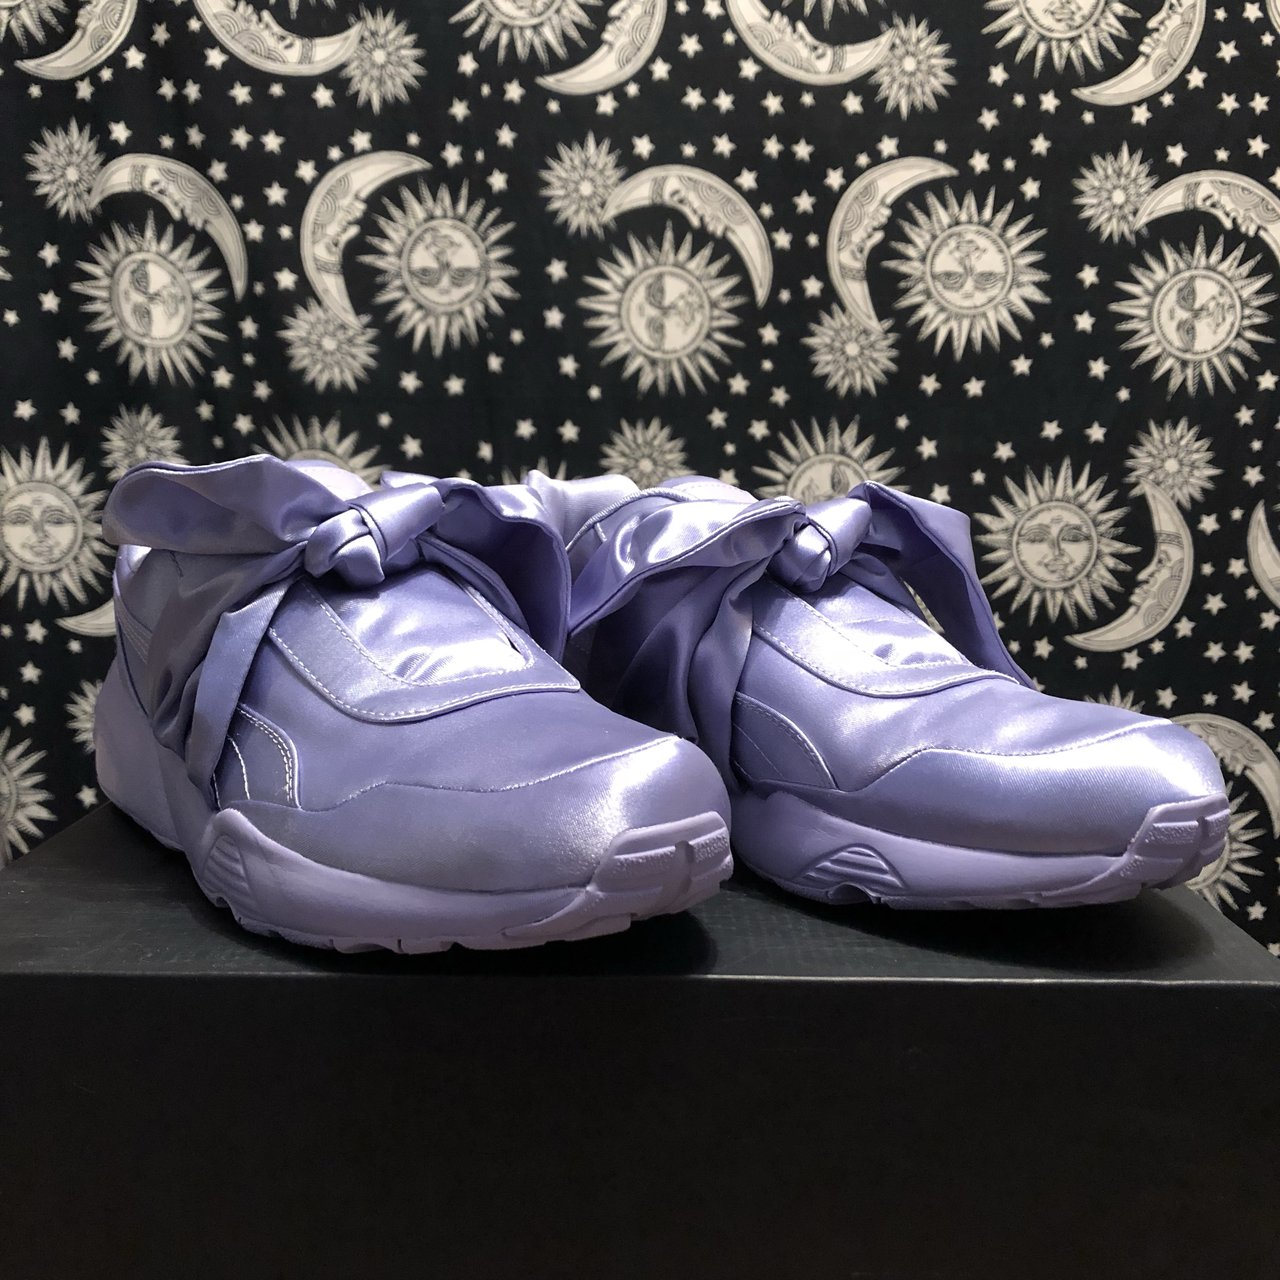 39a5ed63e55e26 Sweet Lavender Bow Sneaker. Size 9 (US) From bad gal x a - Depop